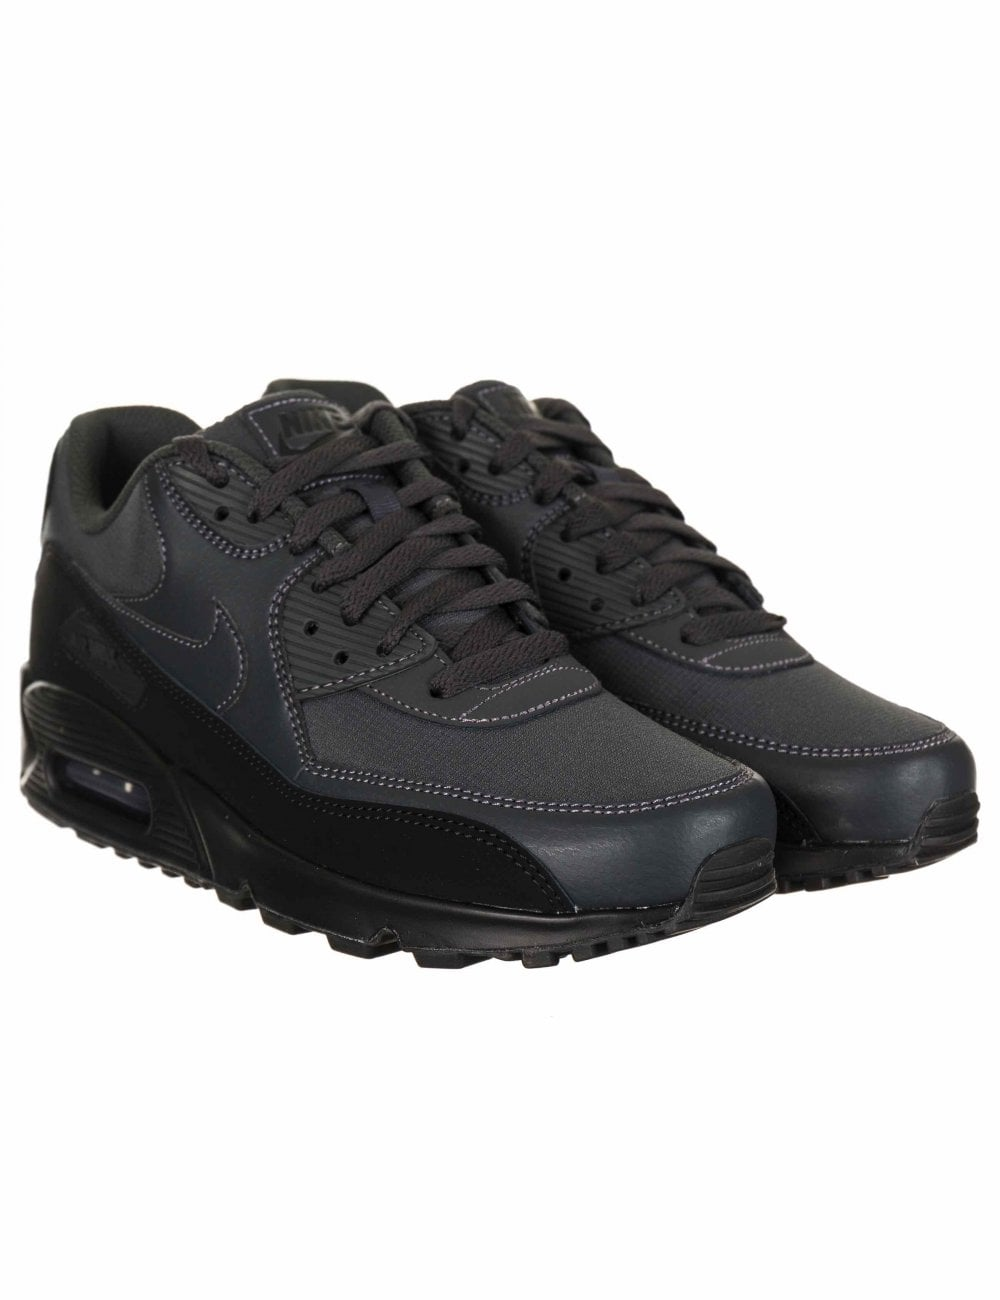 d2c9c8c07c2 Nike Air Max 90 Essential Trainers - Black Anthracite - Footwear ...